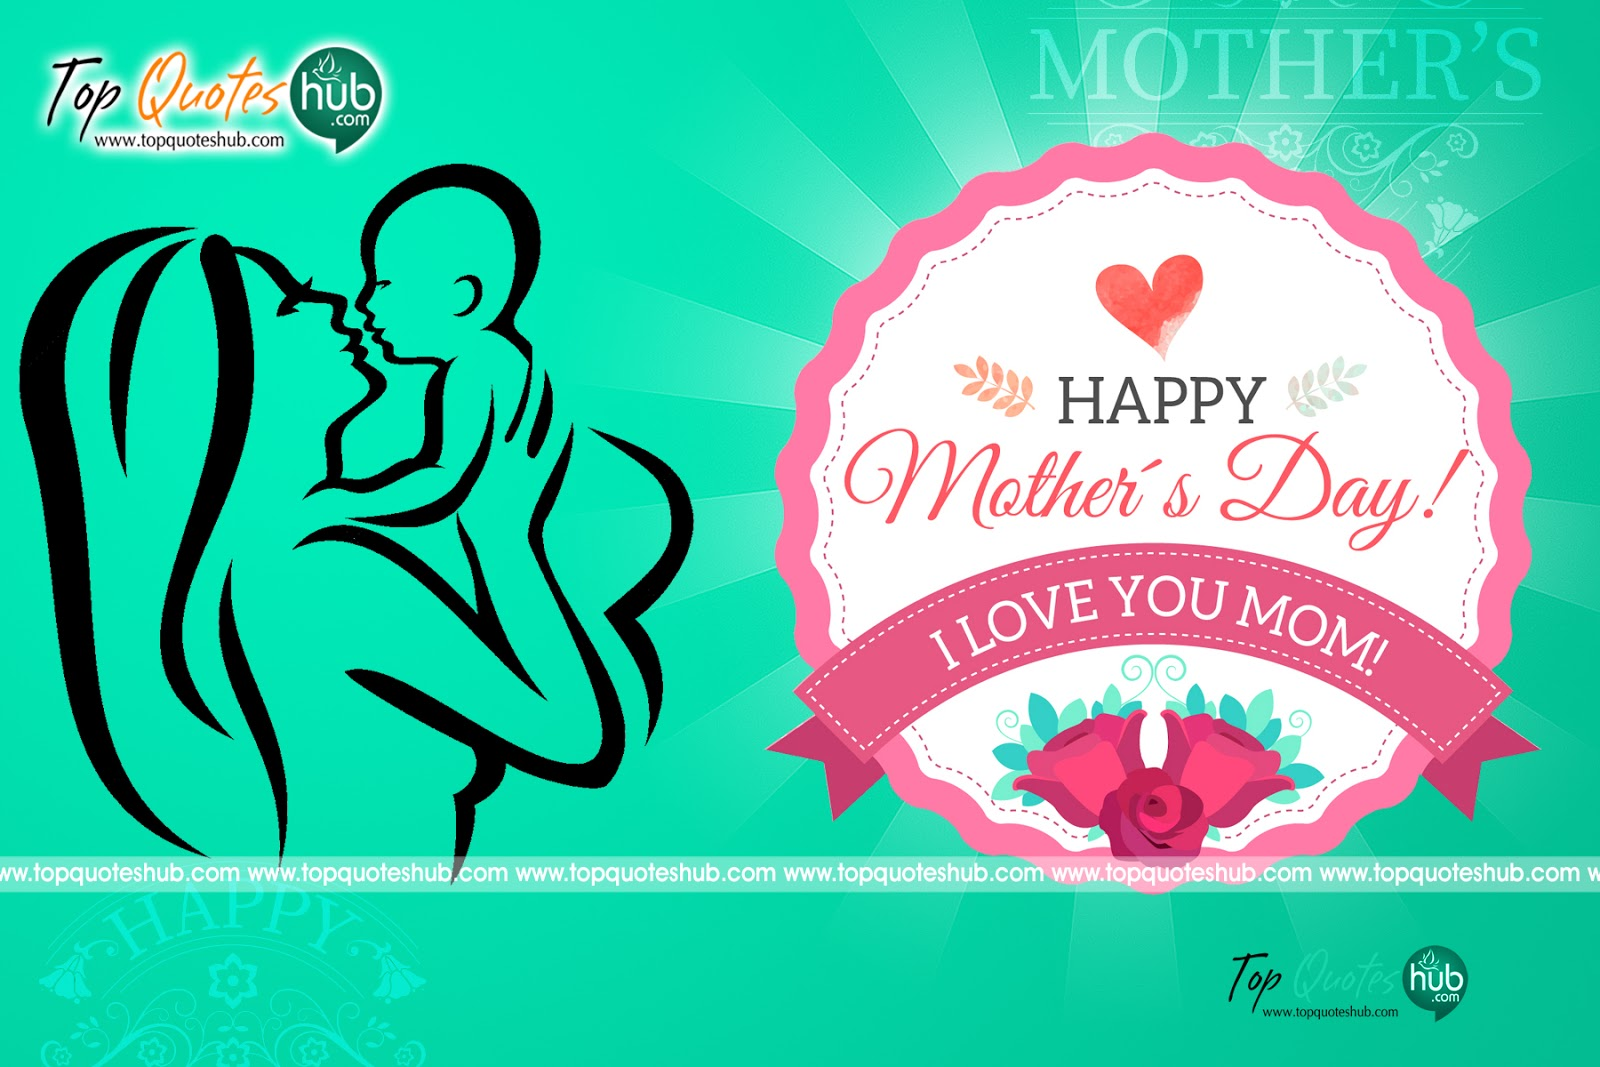 Happy Mothers Day Greetings And Wishes Hd Wallpapers Topquoteshub